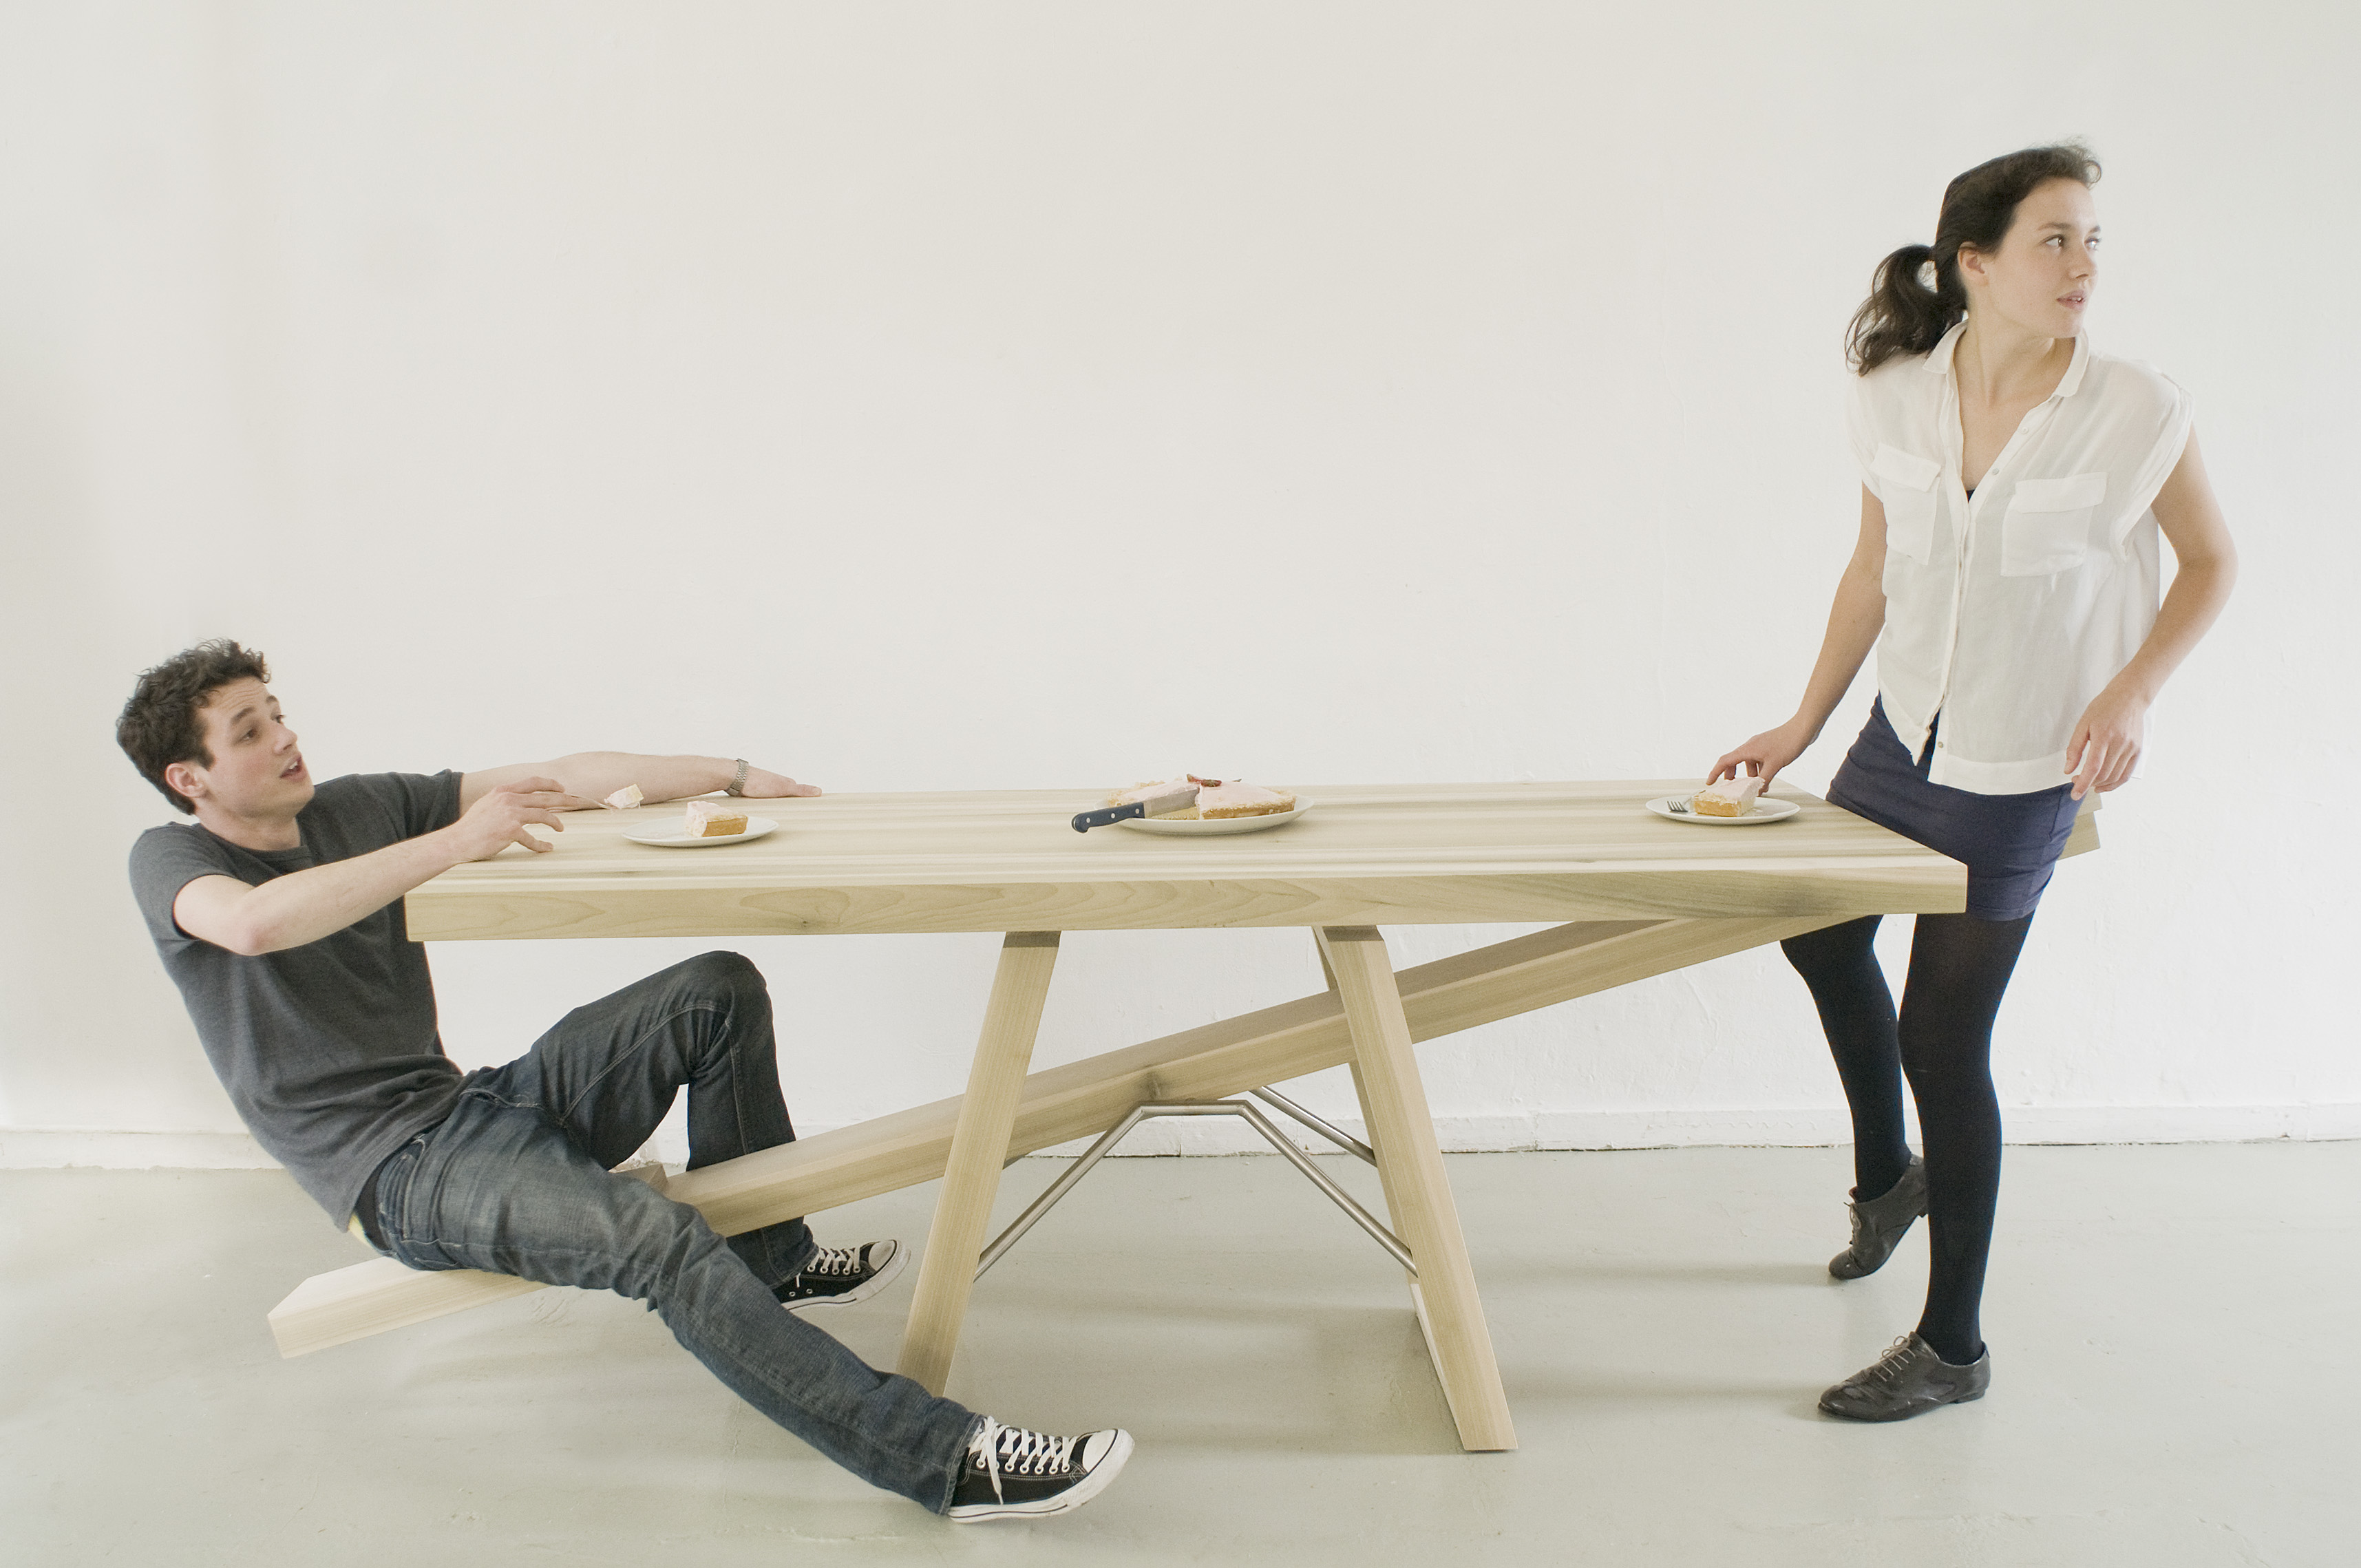 8 whimsical home furnishings that will make you smile for Bizarre coffee table